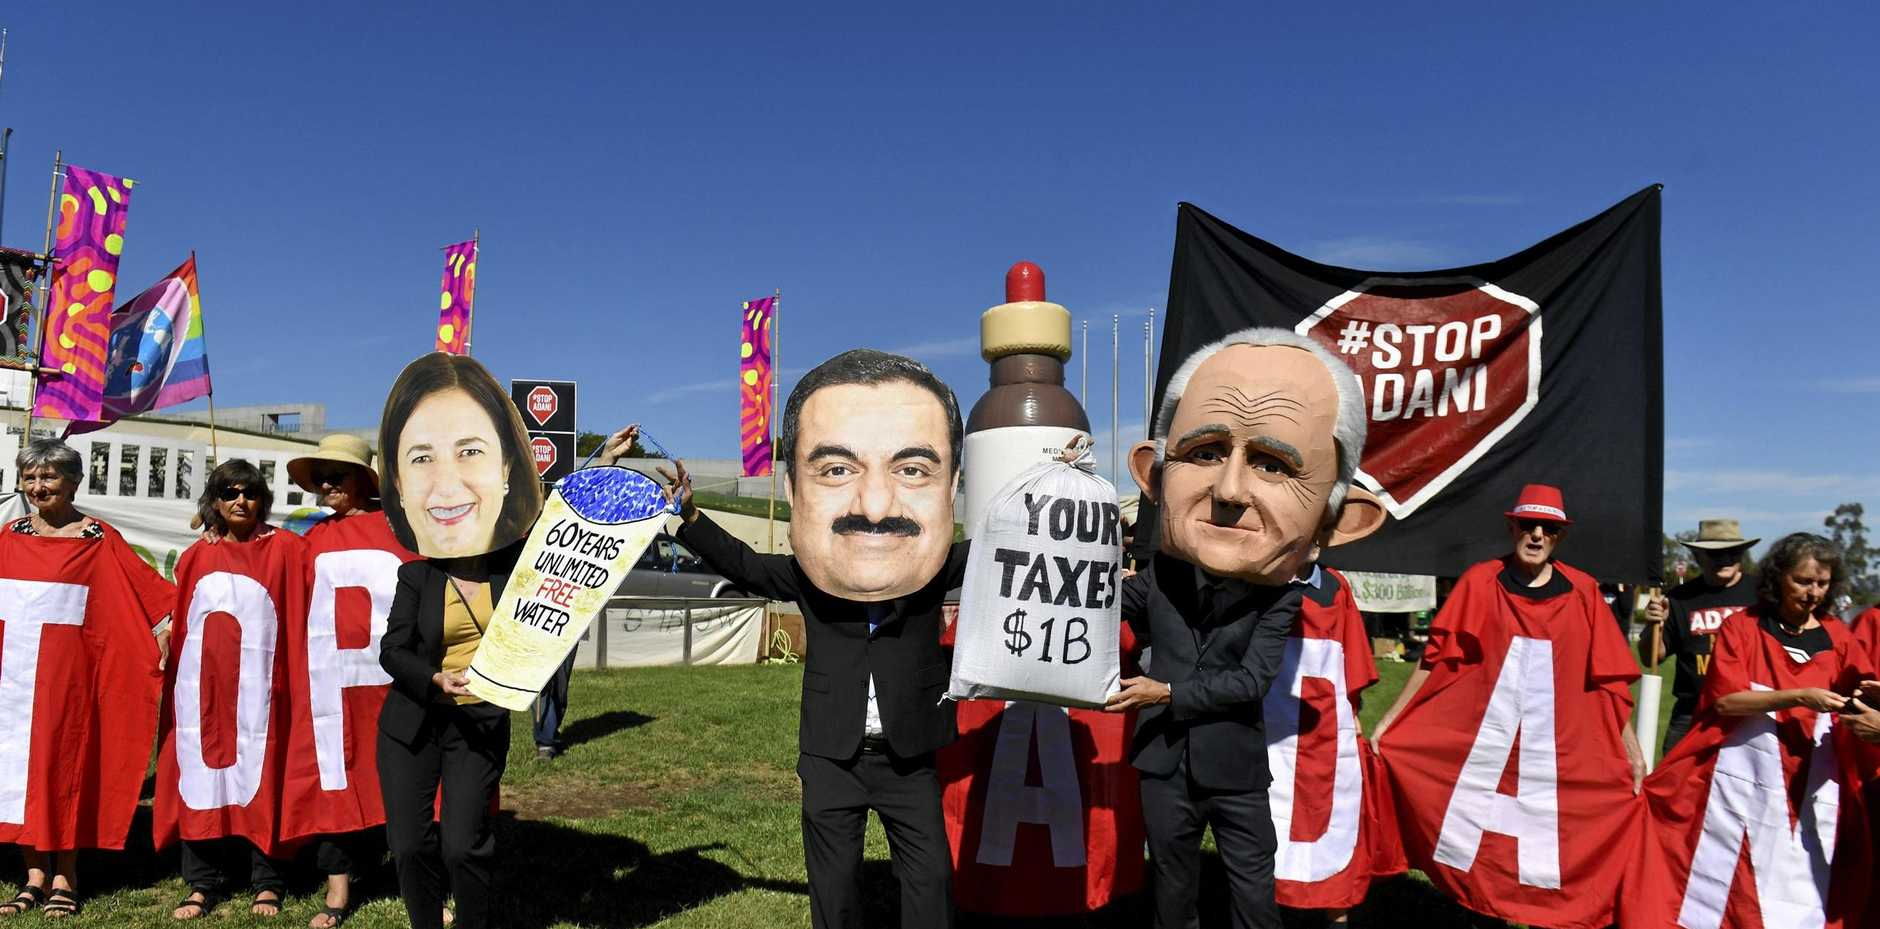 Queensland Premier Annastacia Palaszczuk, Adani chairman Gautam Adani and Prime Minister Malcolm Turnbull are targeted in Canberra.